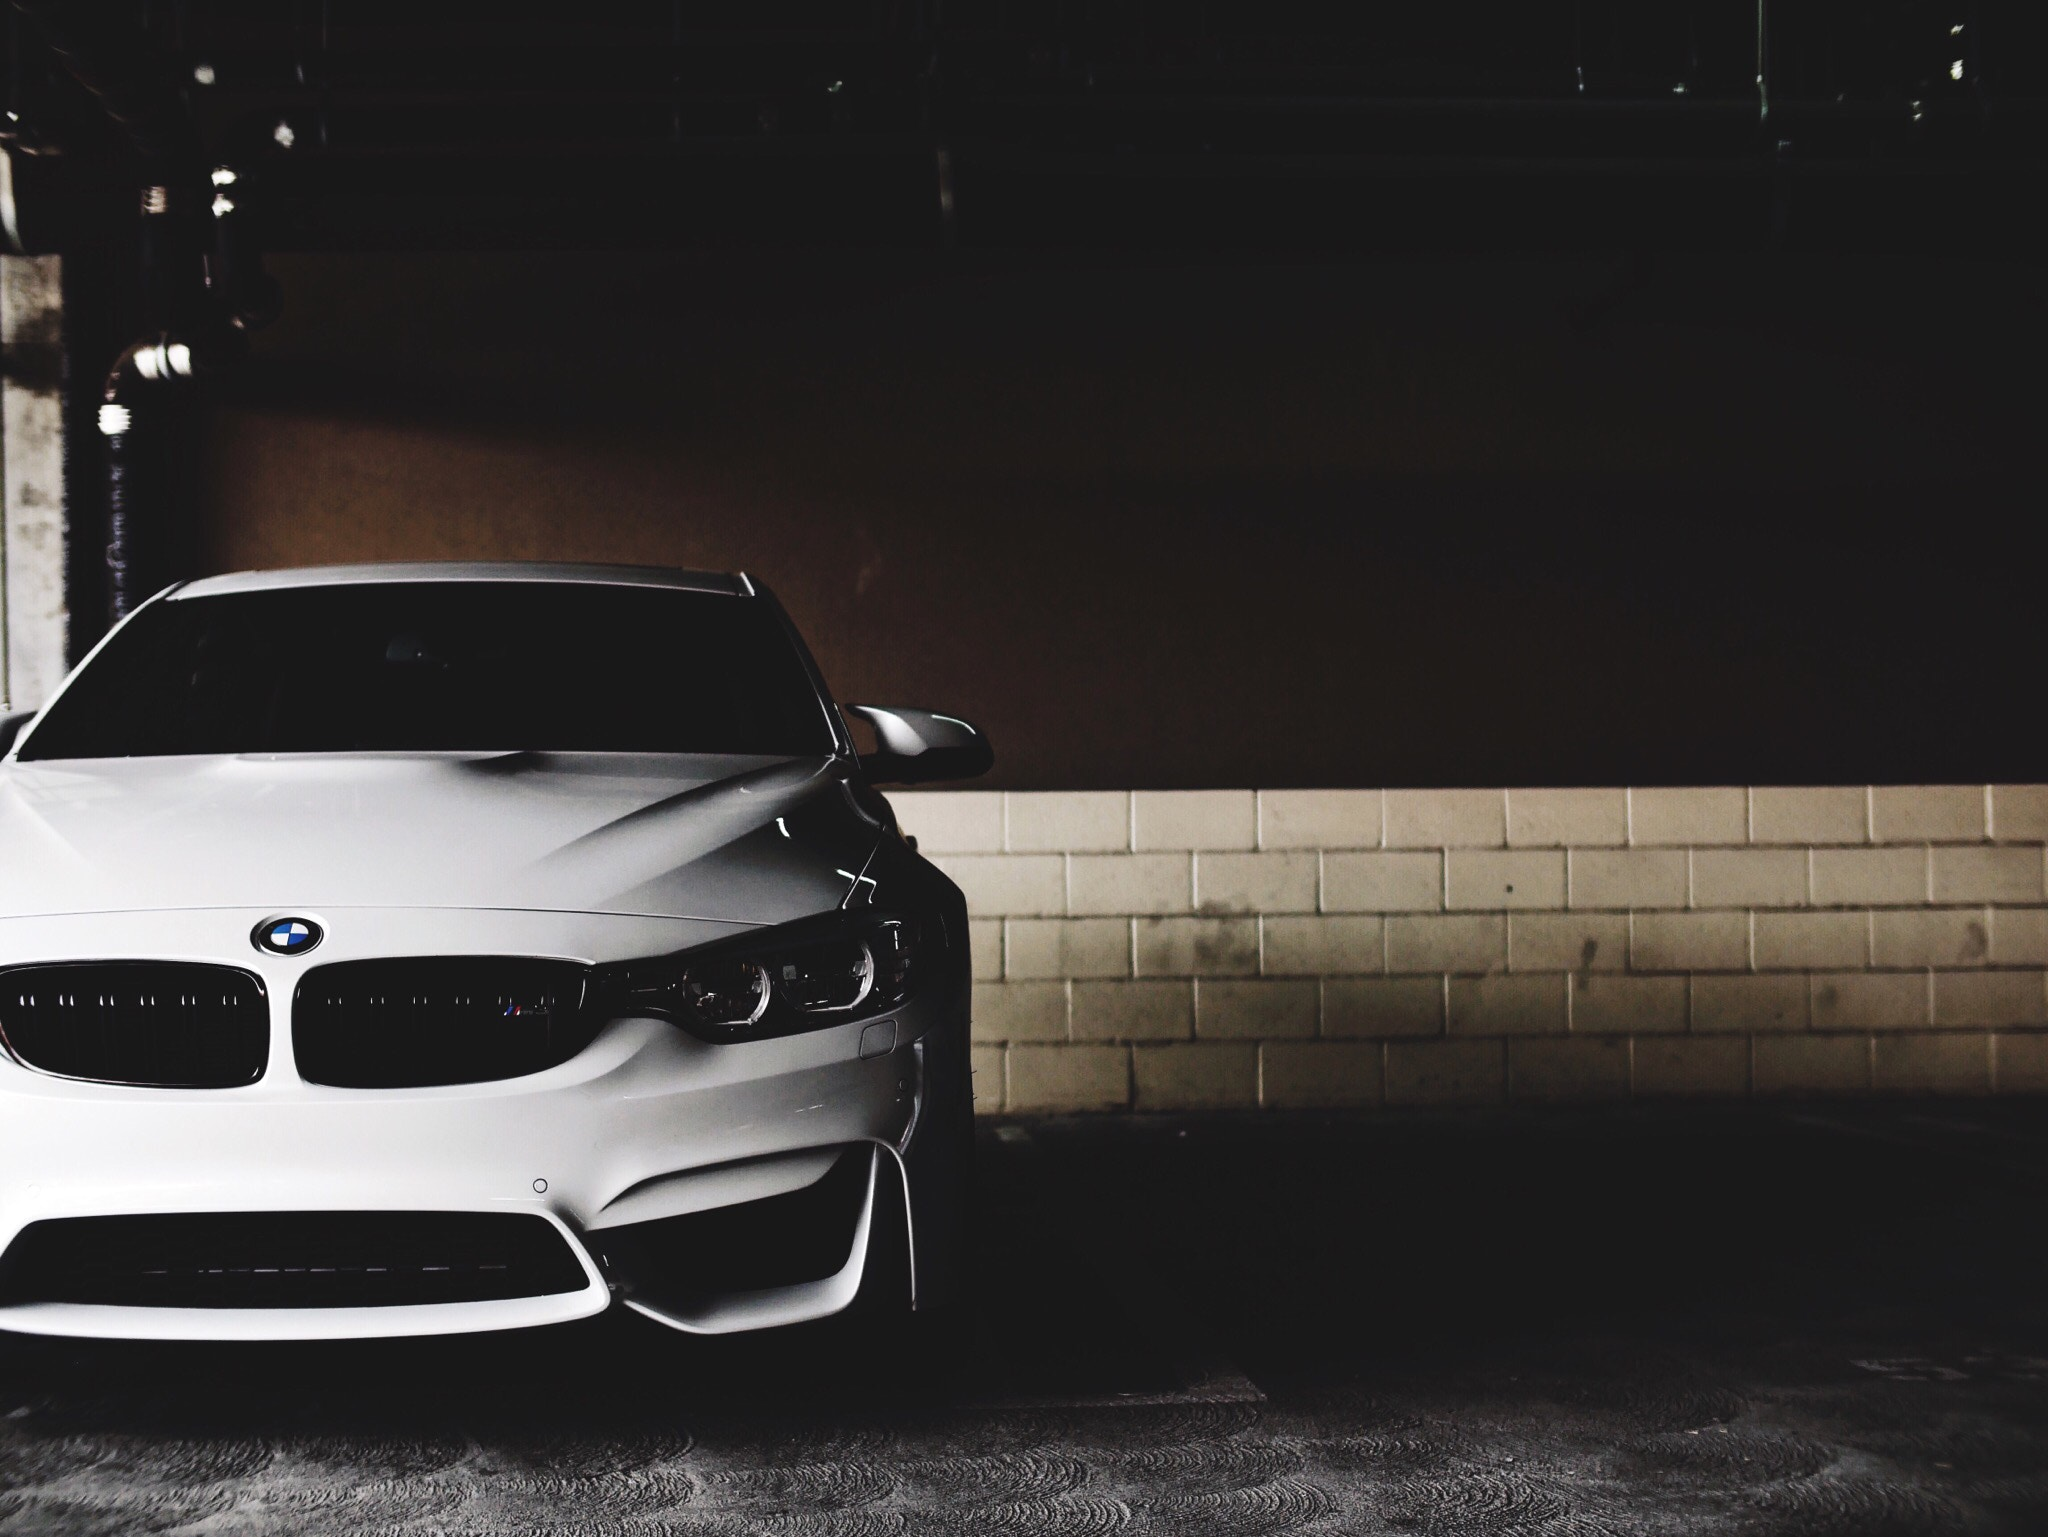 White BMW with shadowing